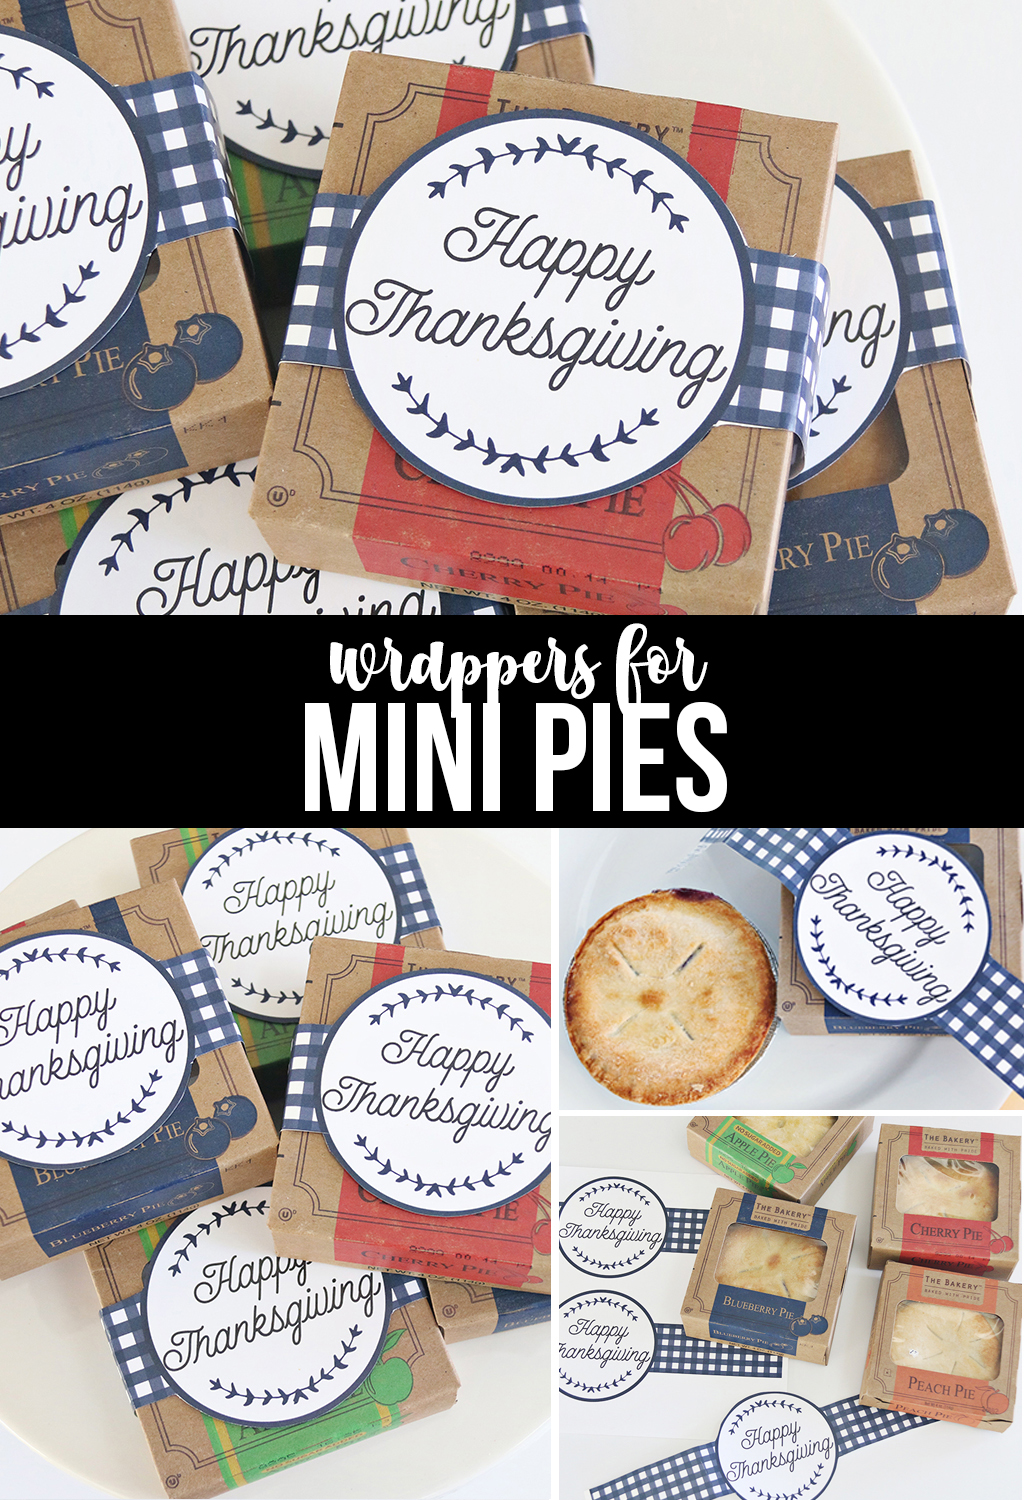 Wrappers for Mini Pies